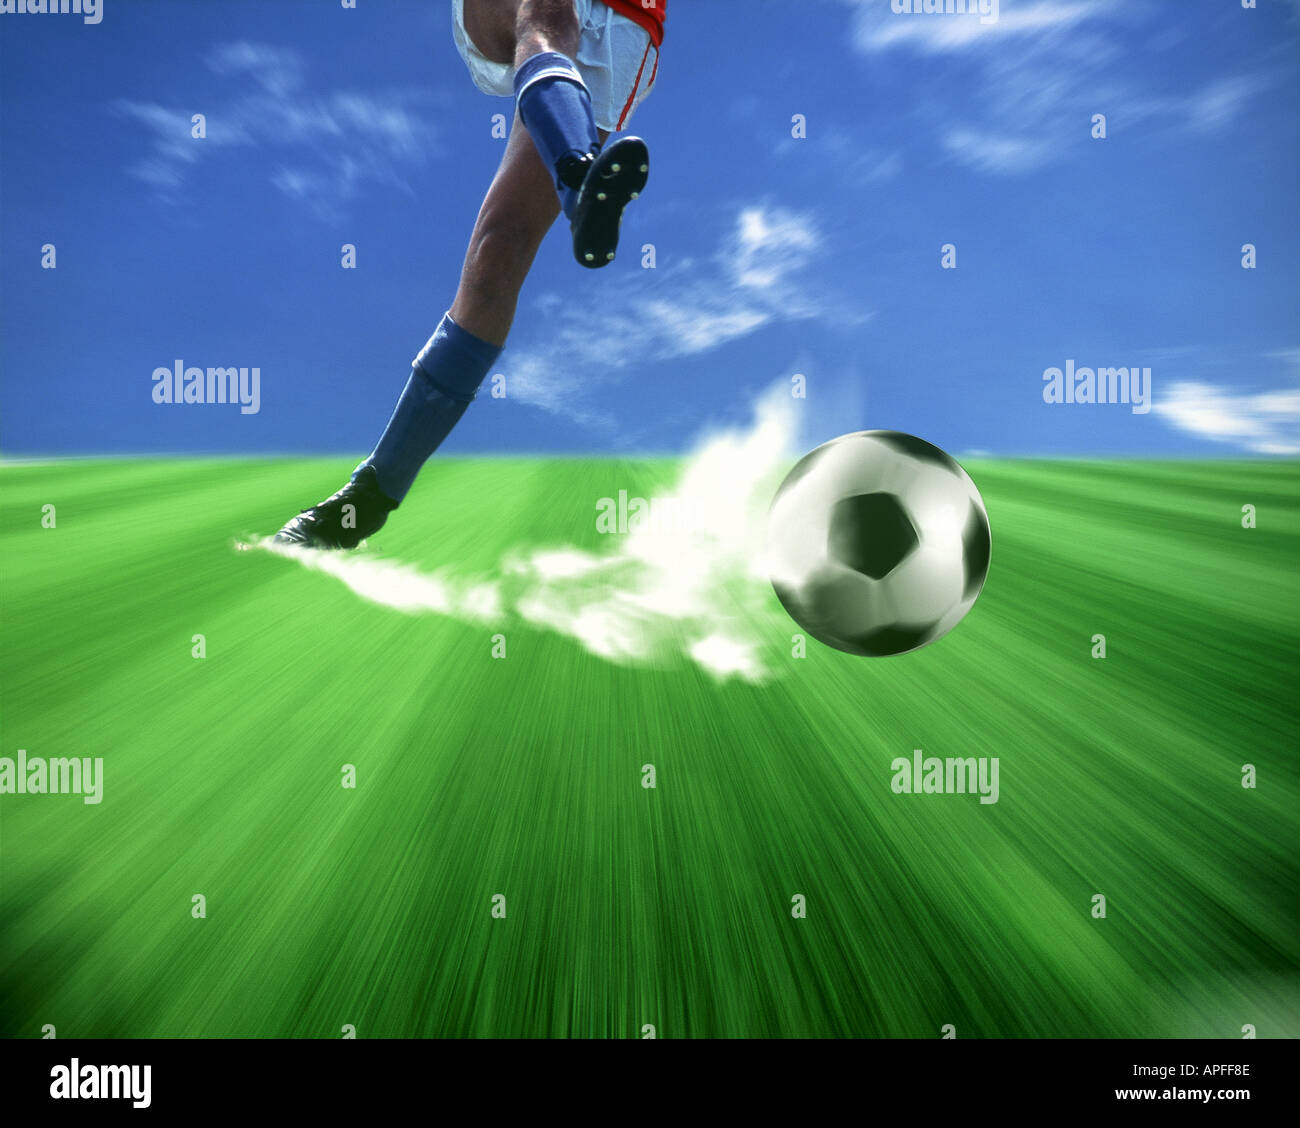 Sport Illustrations Computer Graphics CG Team Sports Ball Games Soccer Football - Stock Image